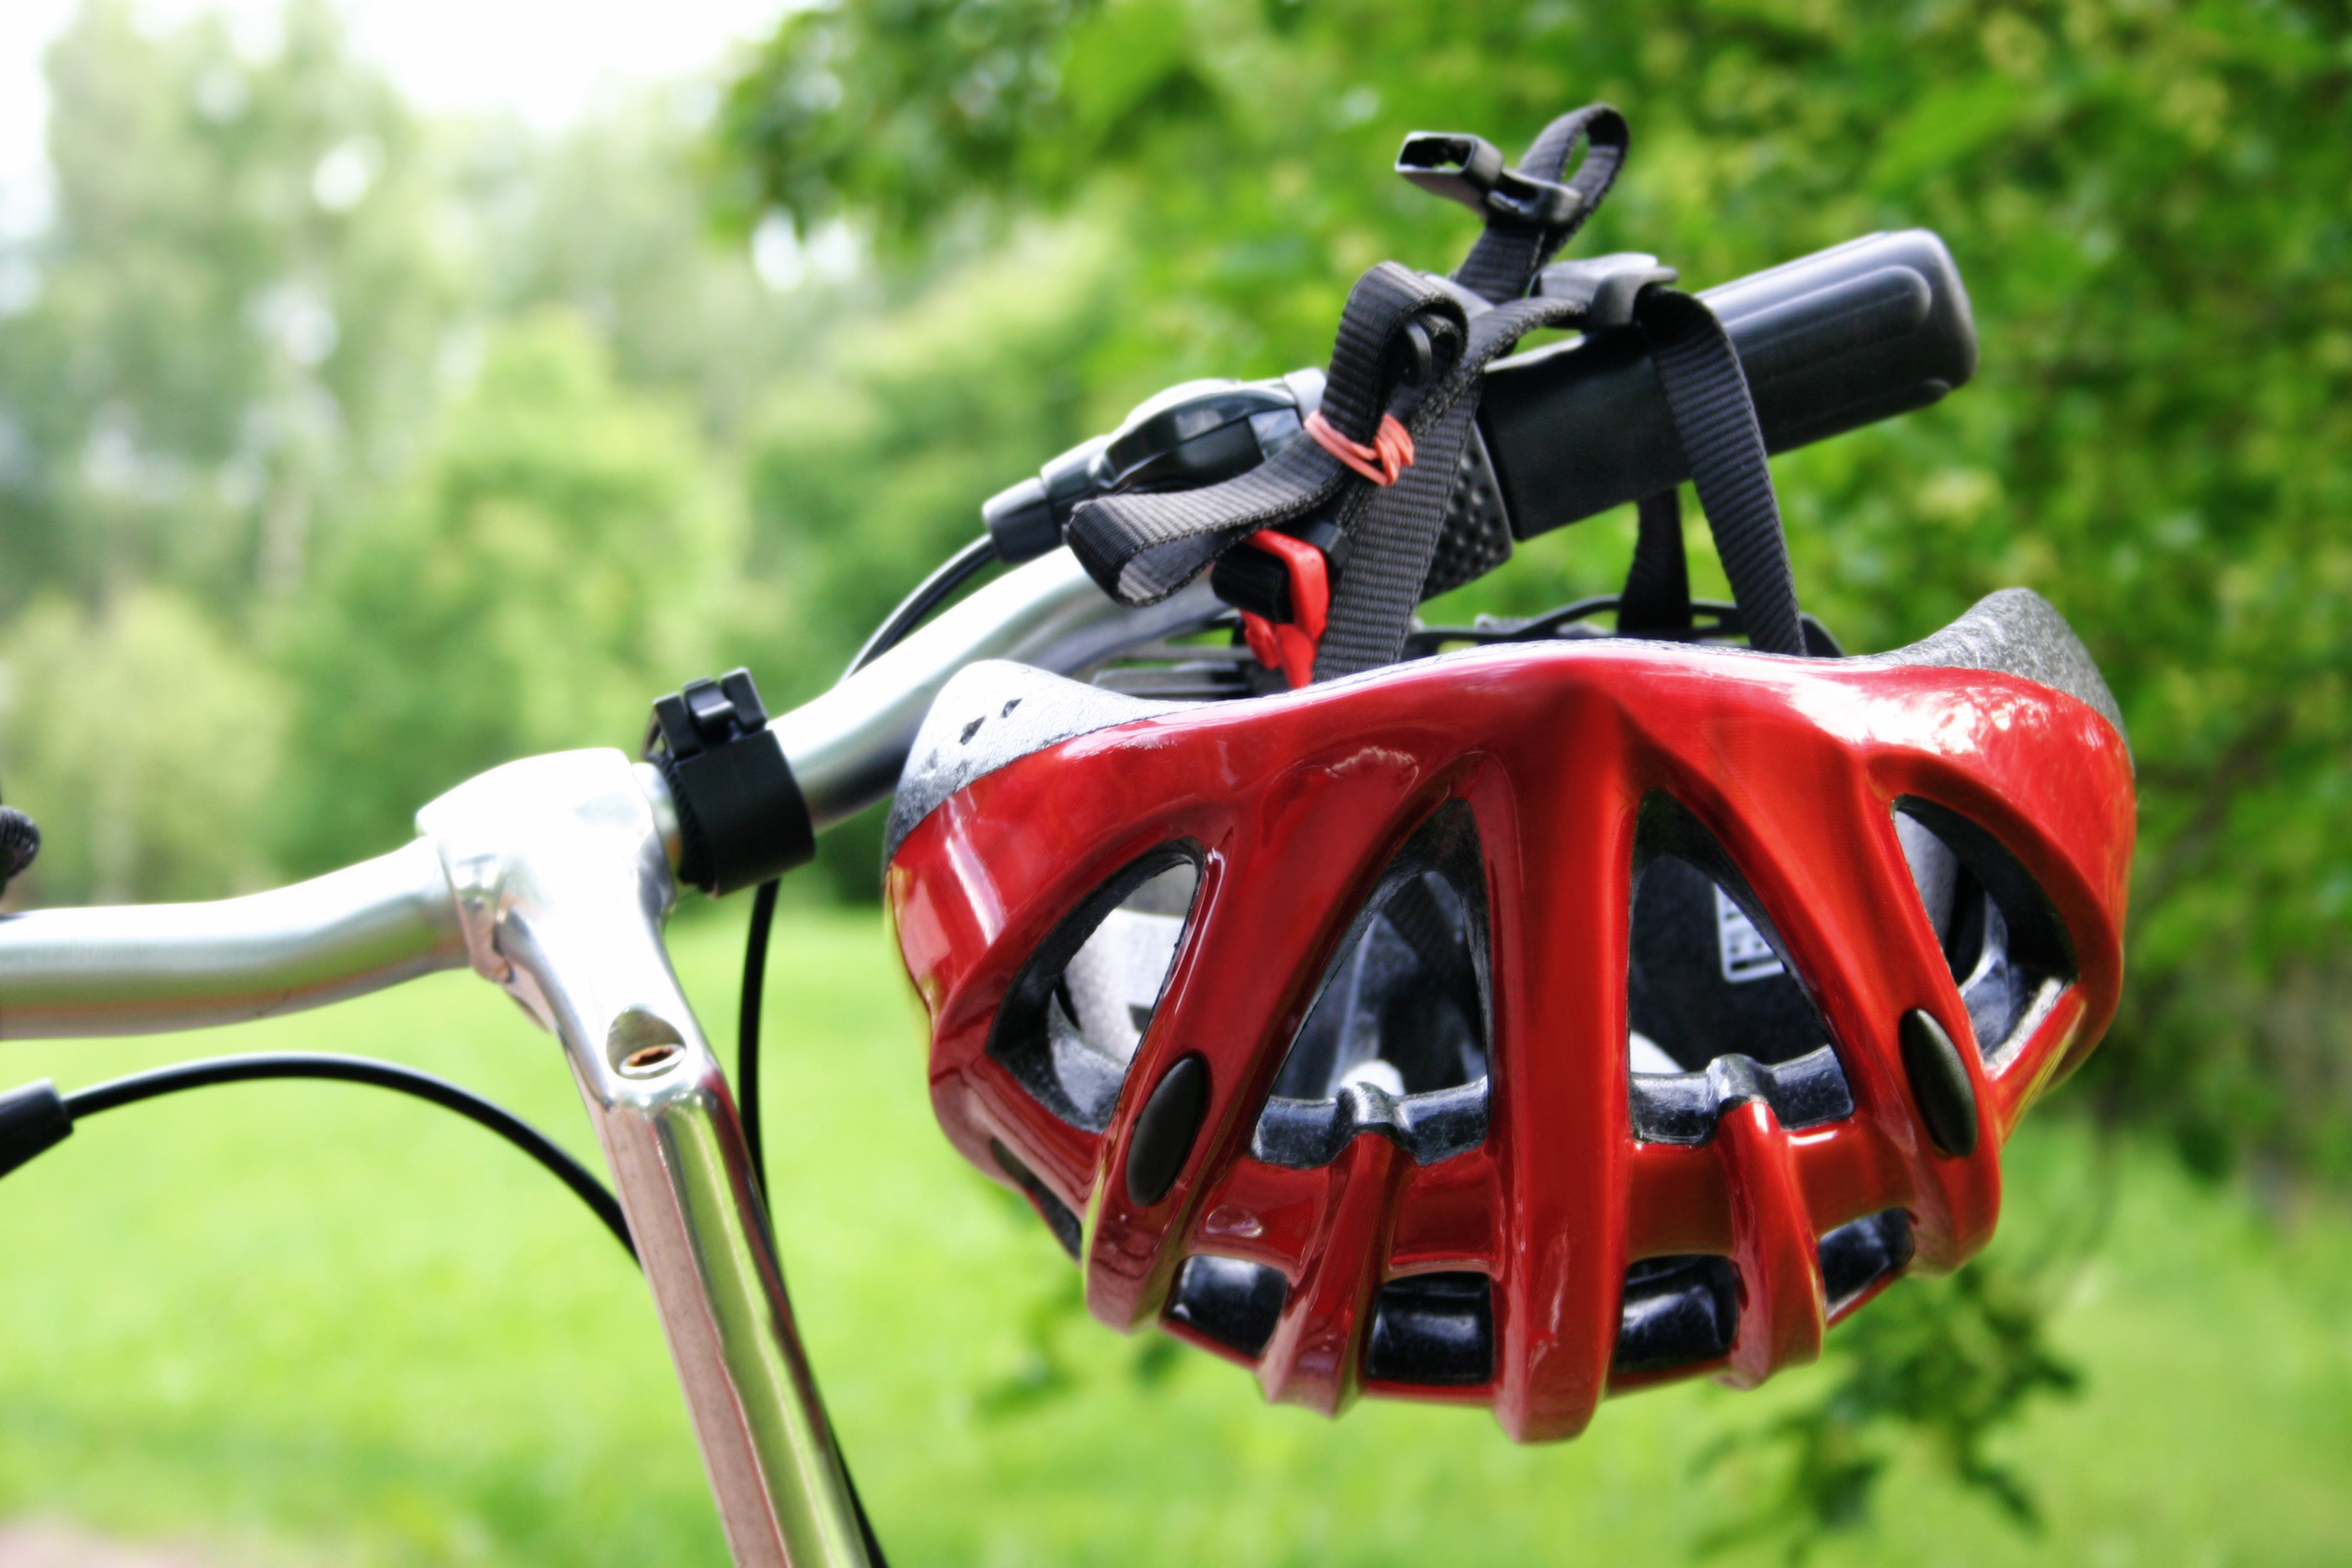 Pending Legislation Aims to Improve Bicycle Safety